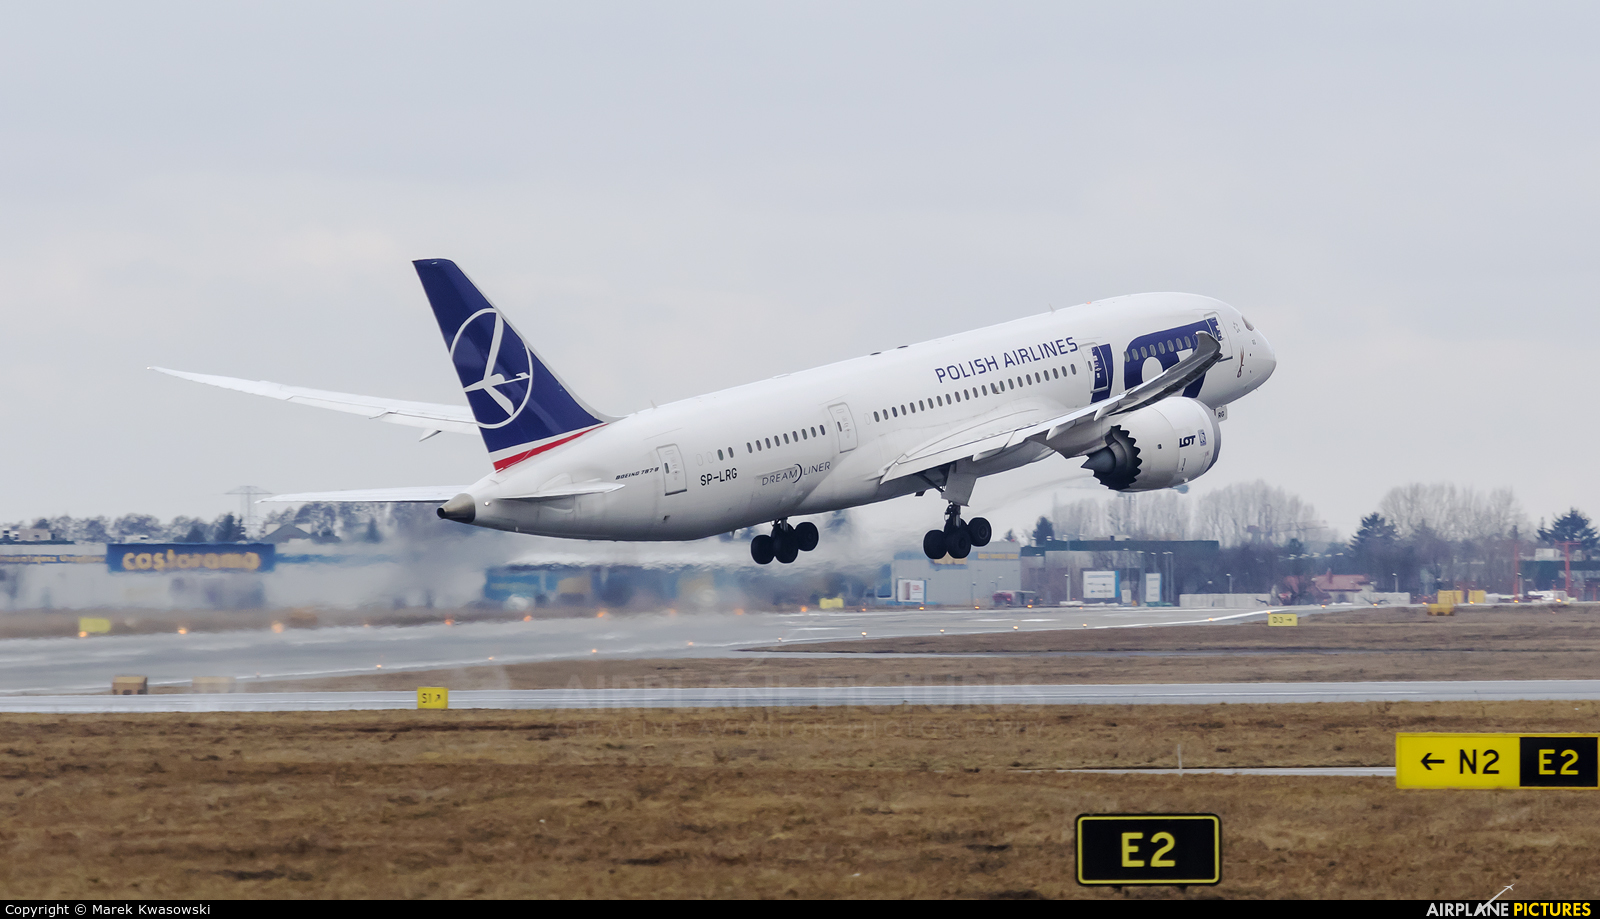 LOT - Polish Airlines SP-LRG aircraft at Warsaw - Frederic Chopin